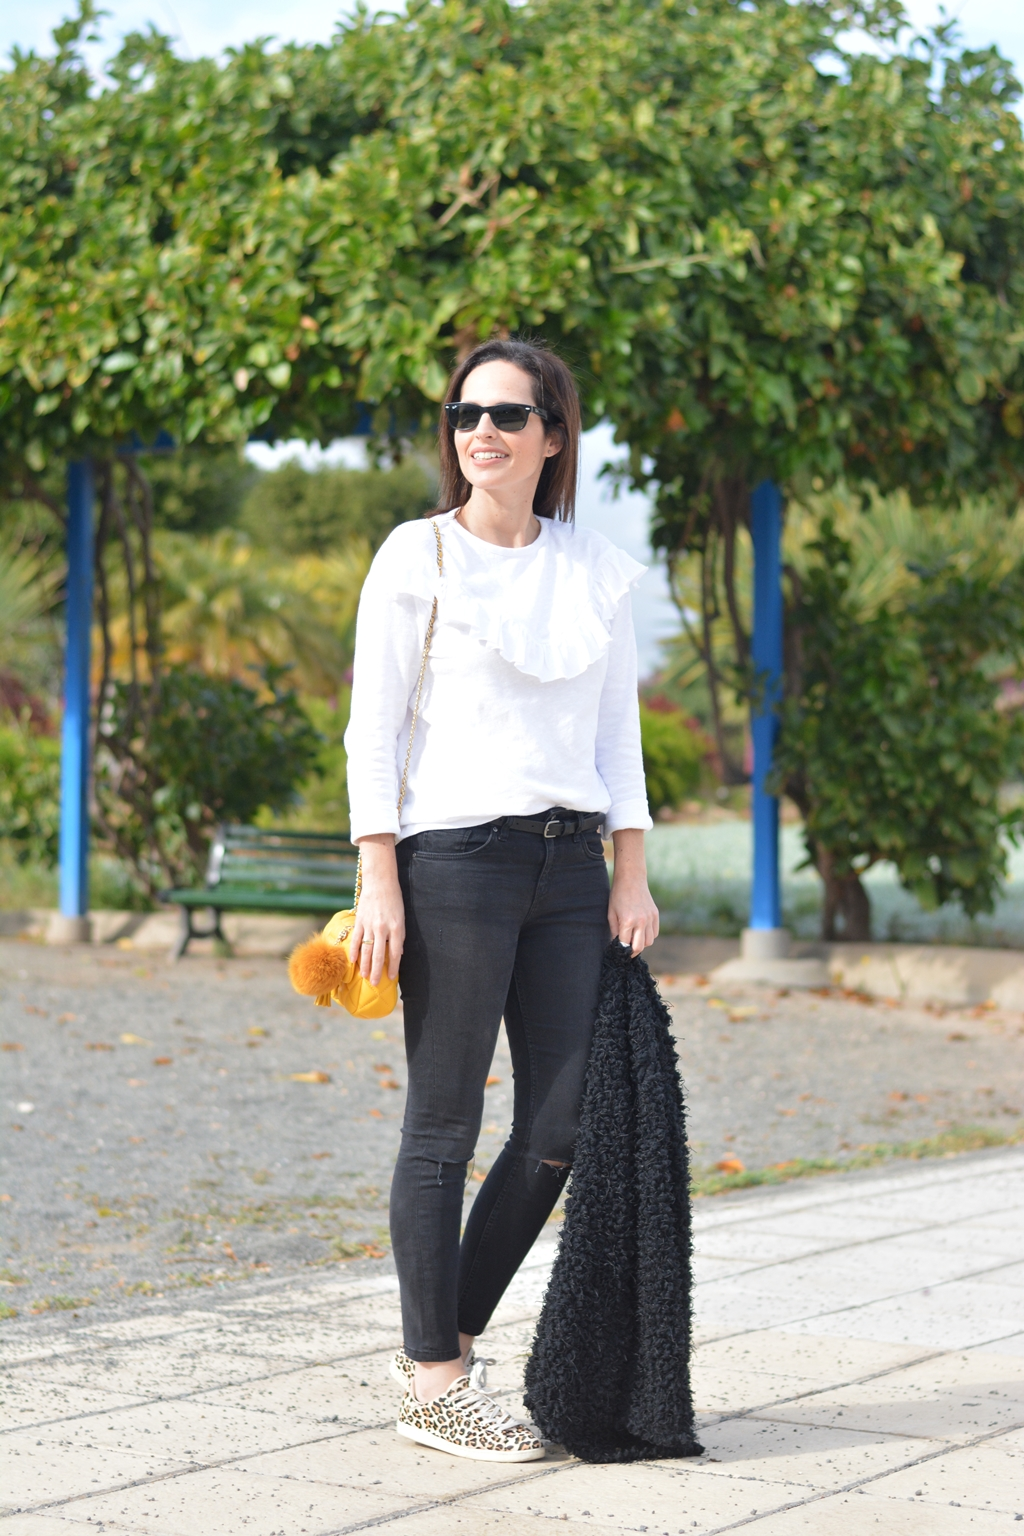 blanco-y-negro-outfit-streetstyle